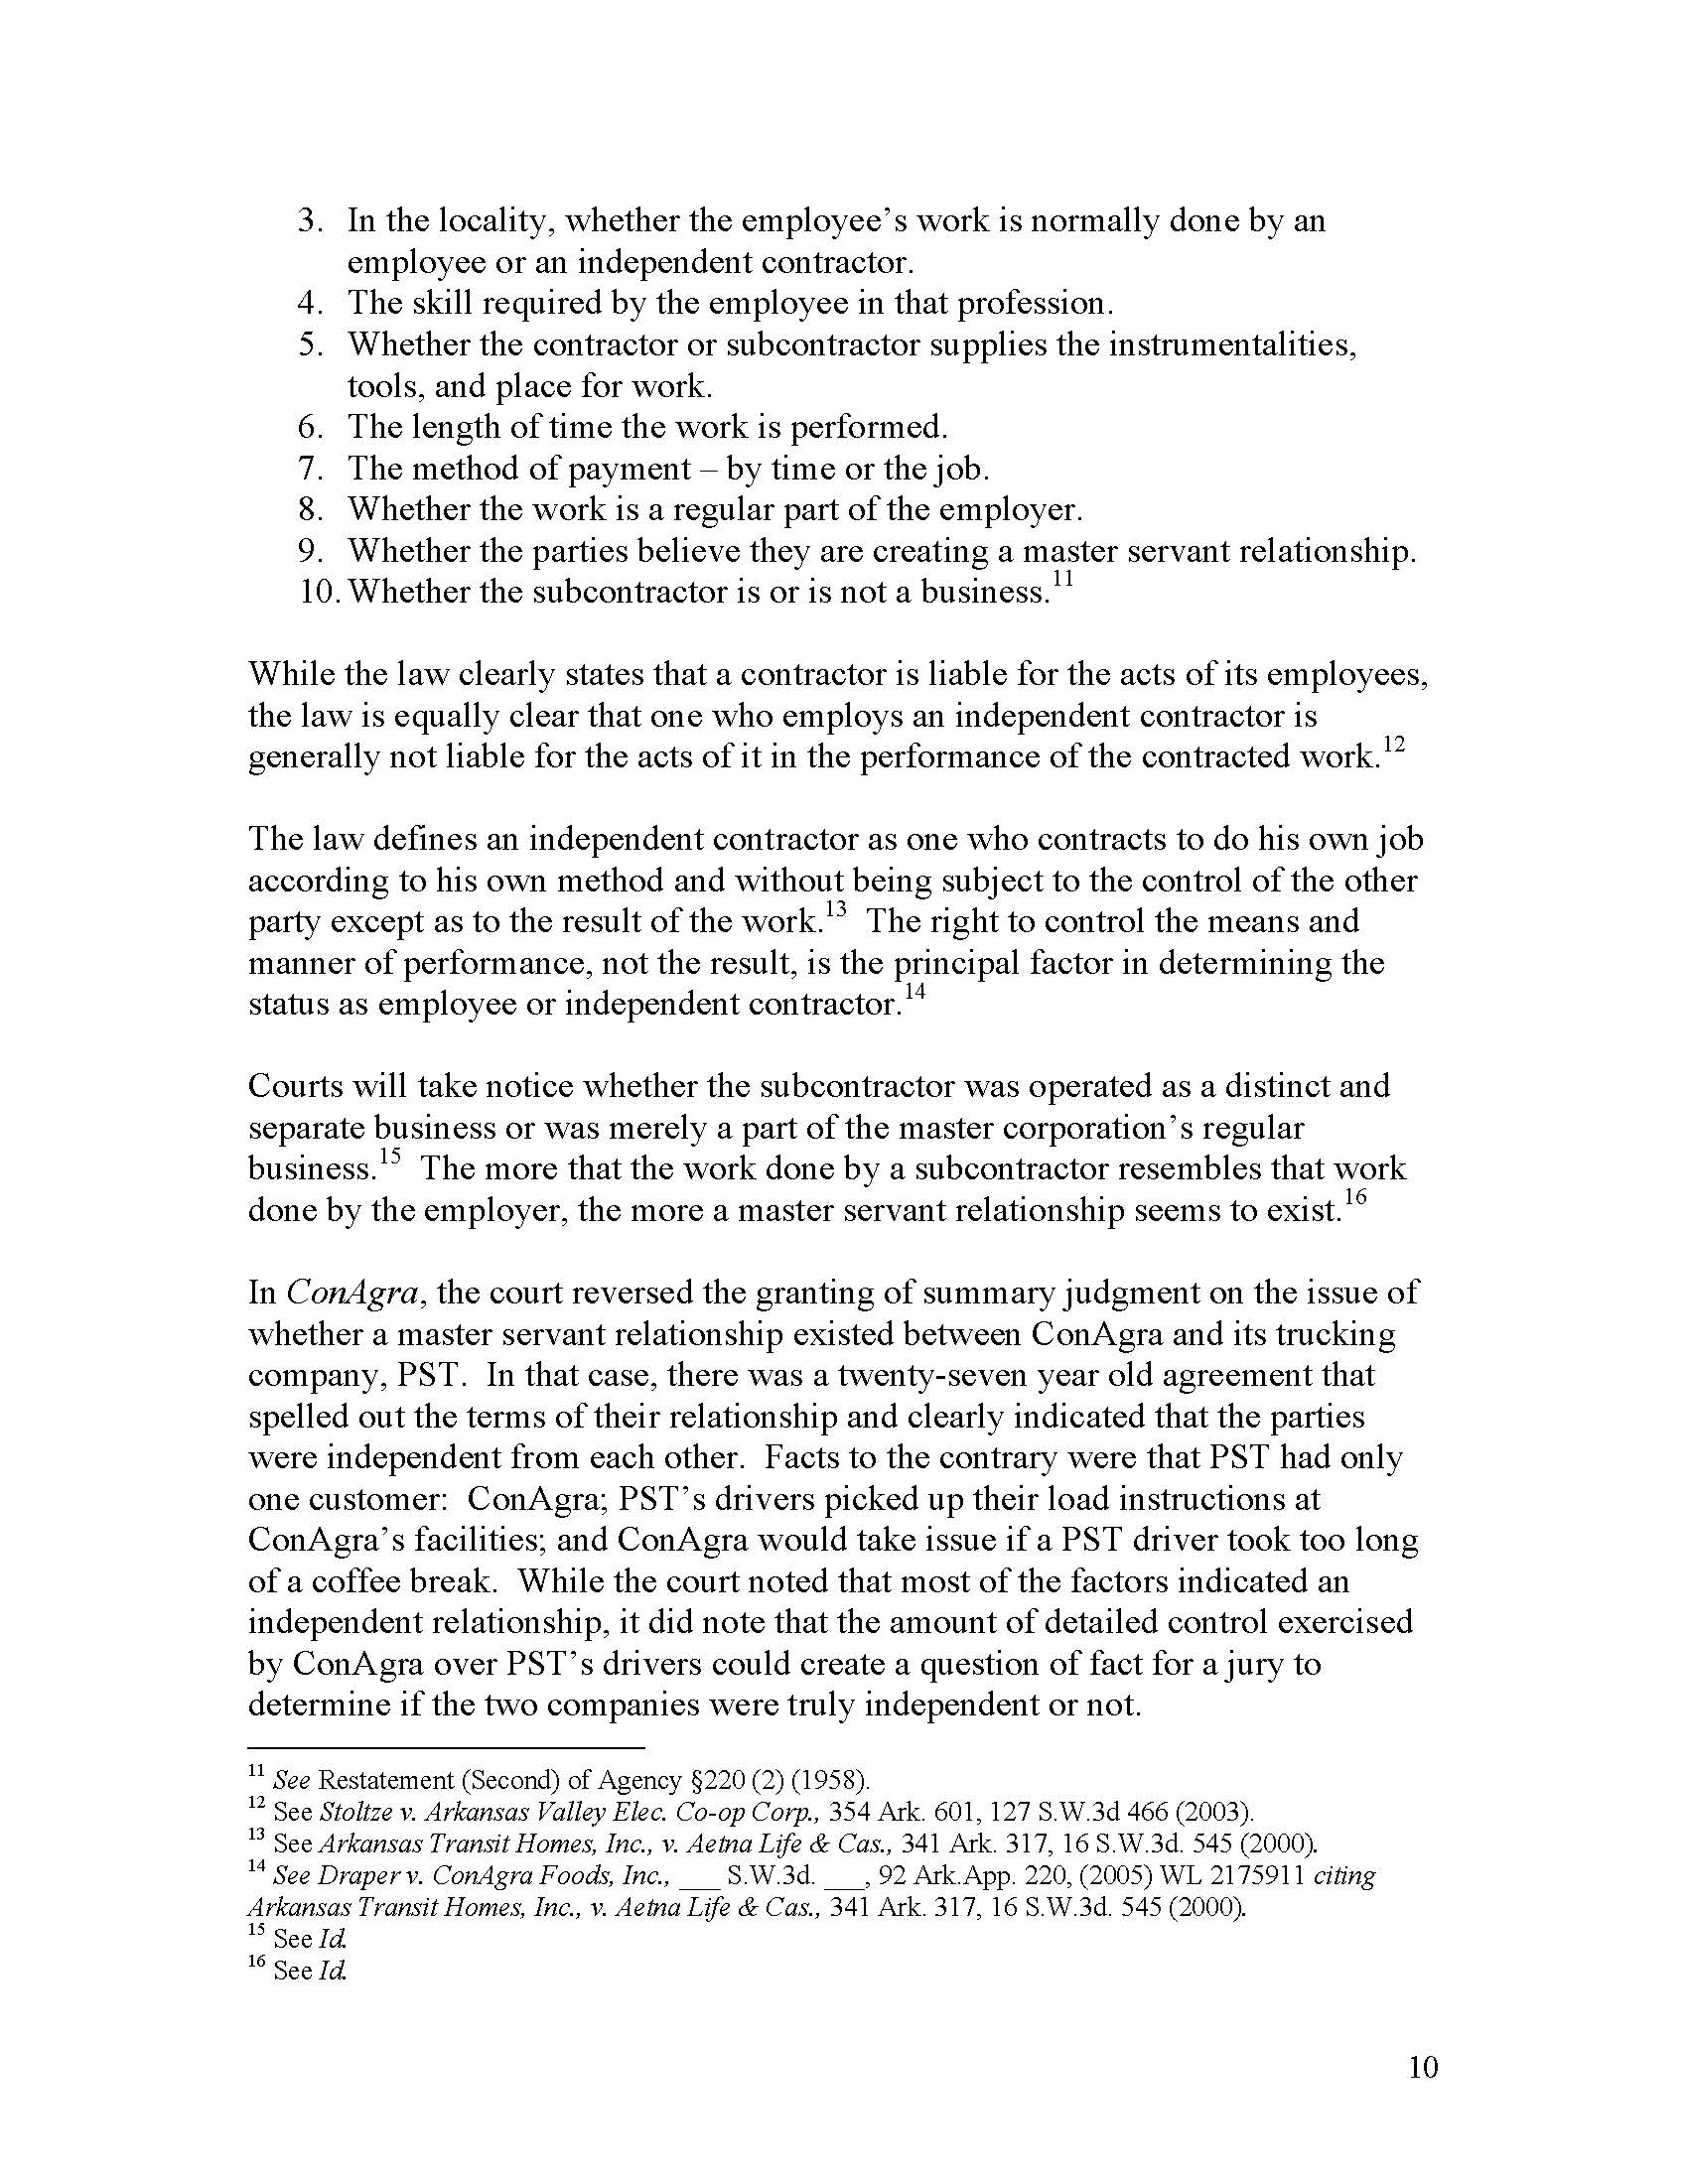 construction-business-structure-how-to-protect-your-equity_Page_10.jpg